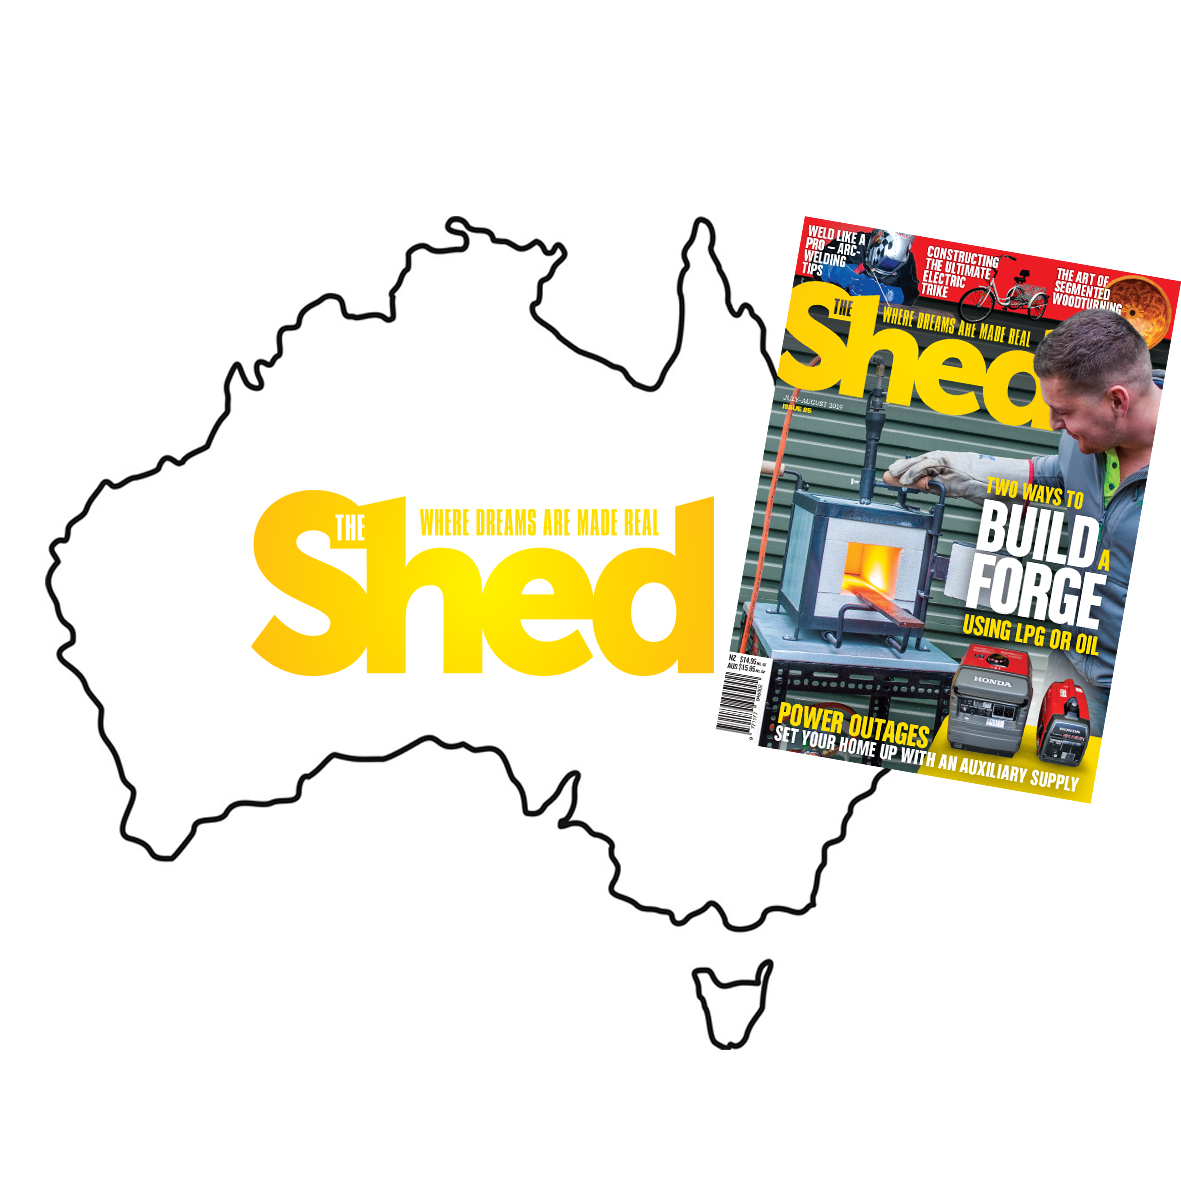 The-Shed-85-Aussie.jpg